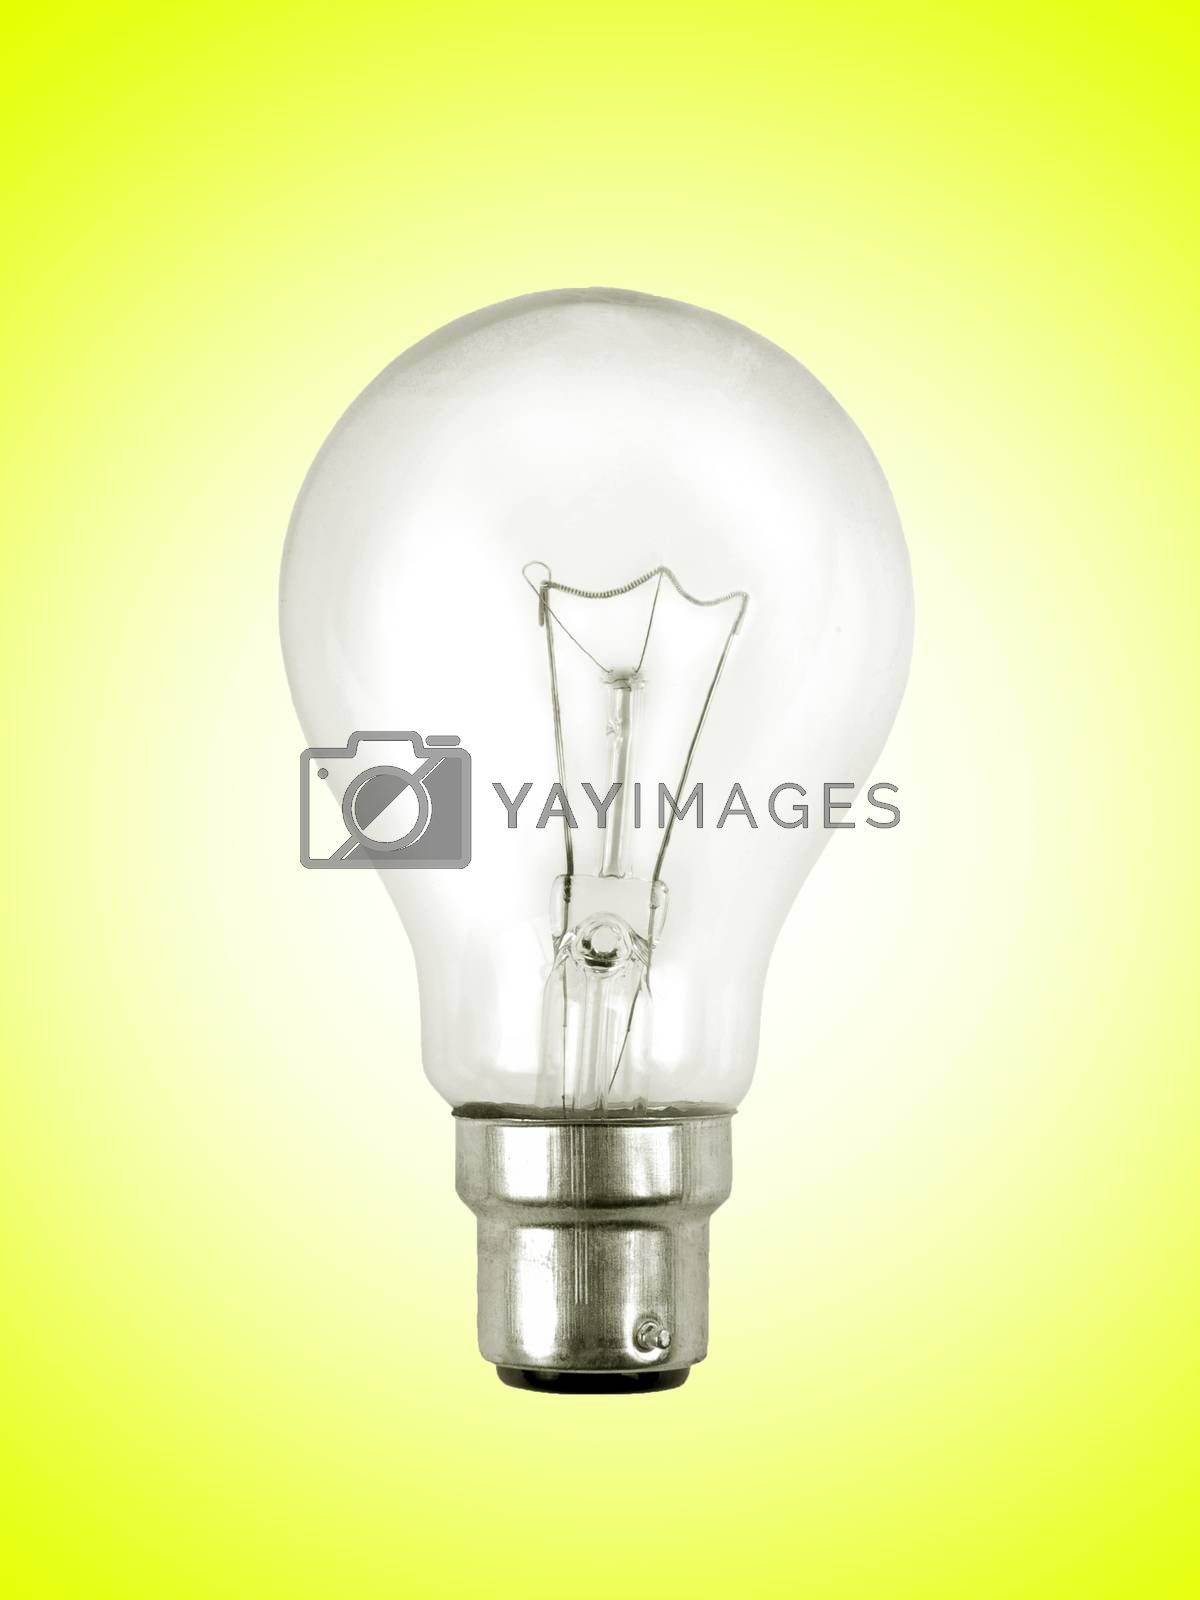 light bulb on the yellow surface